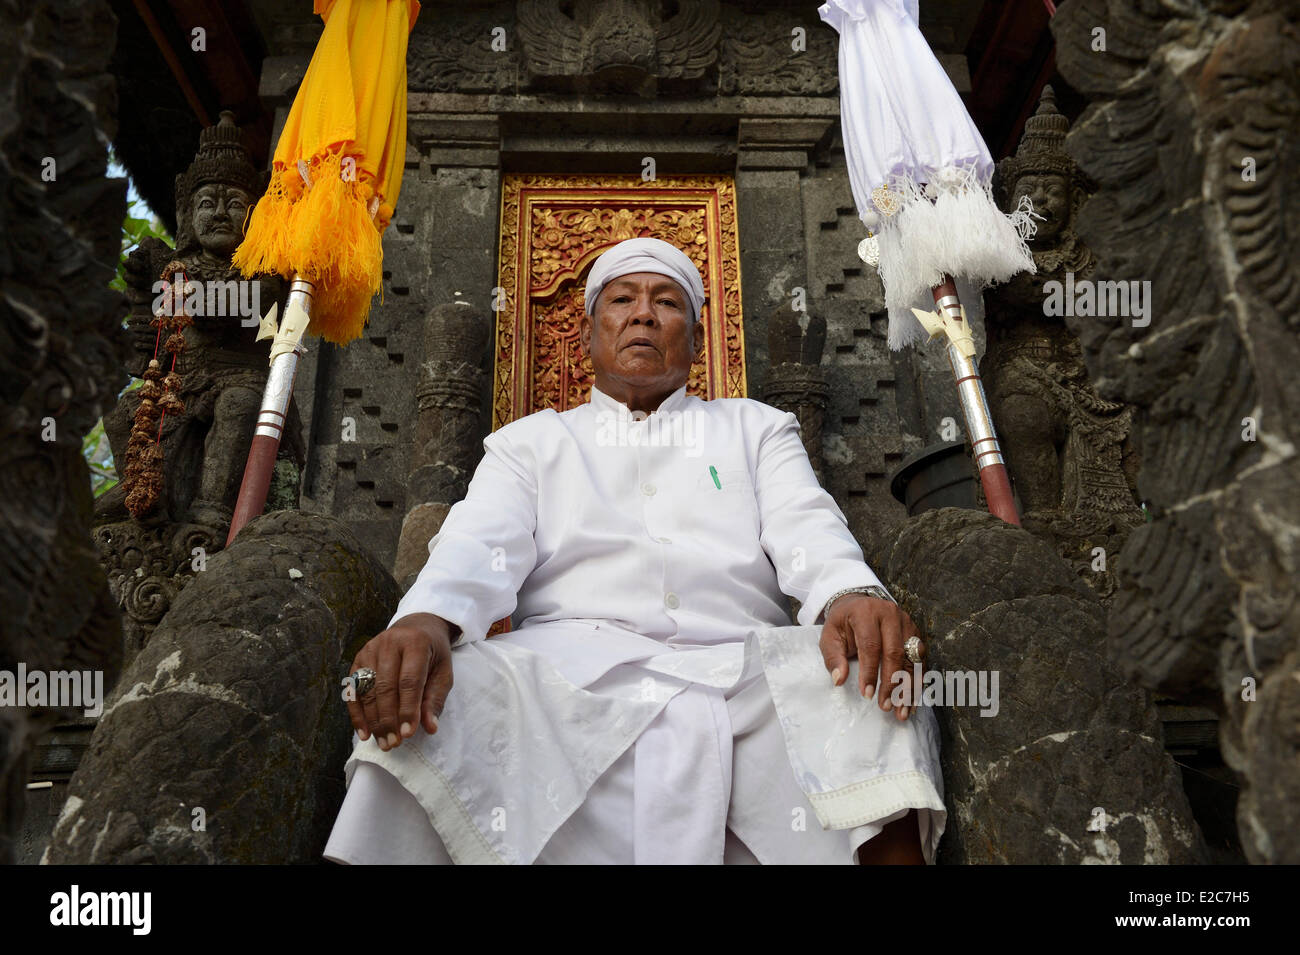 Indonesia, Bali, Padangbai, priest at Pura Tanjungsari temple - Stock Image